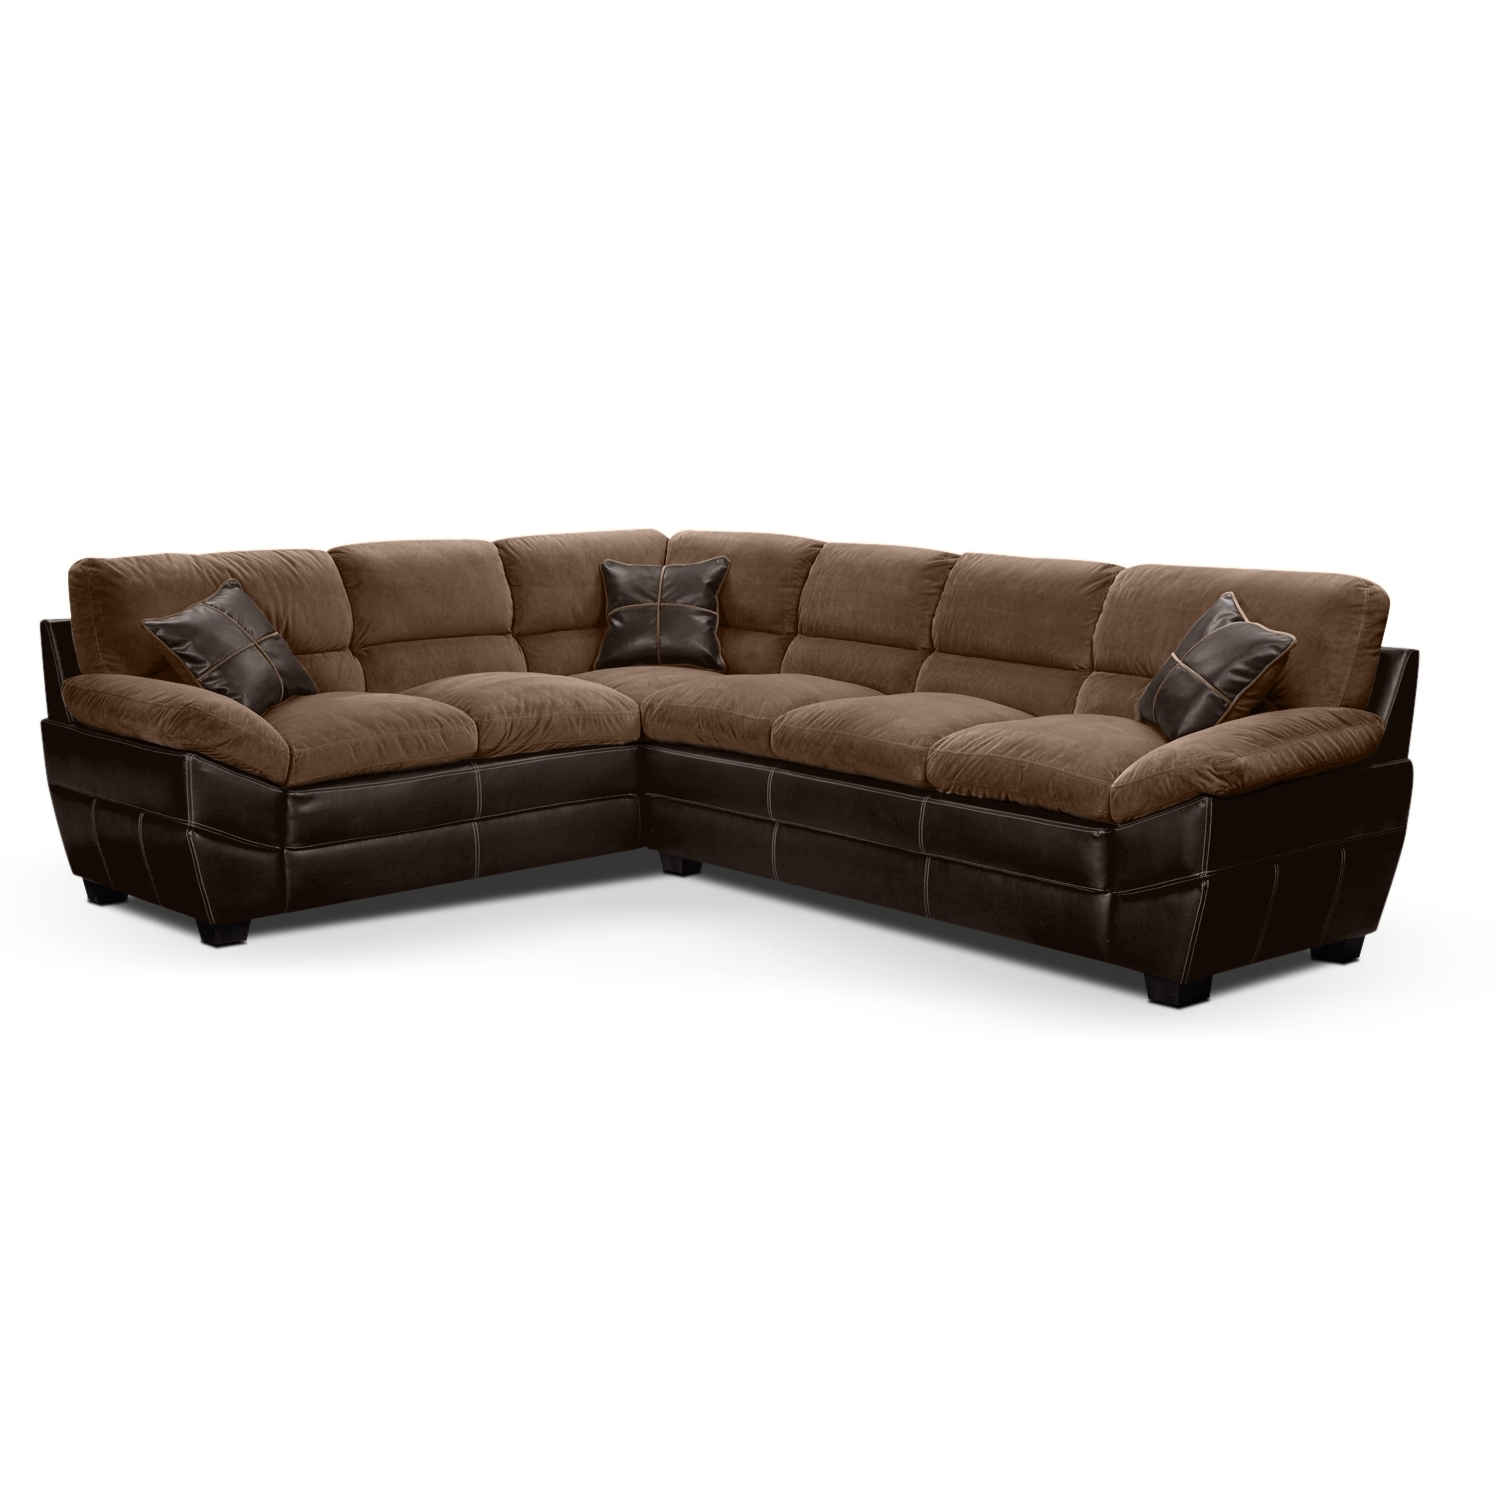 Value City Sectional Sofa With Regard To Best Home Furniture Throughout Most Current Value City Sectional Sofas (View 14 of 20)